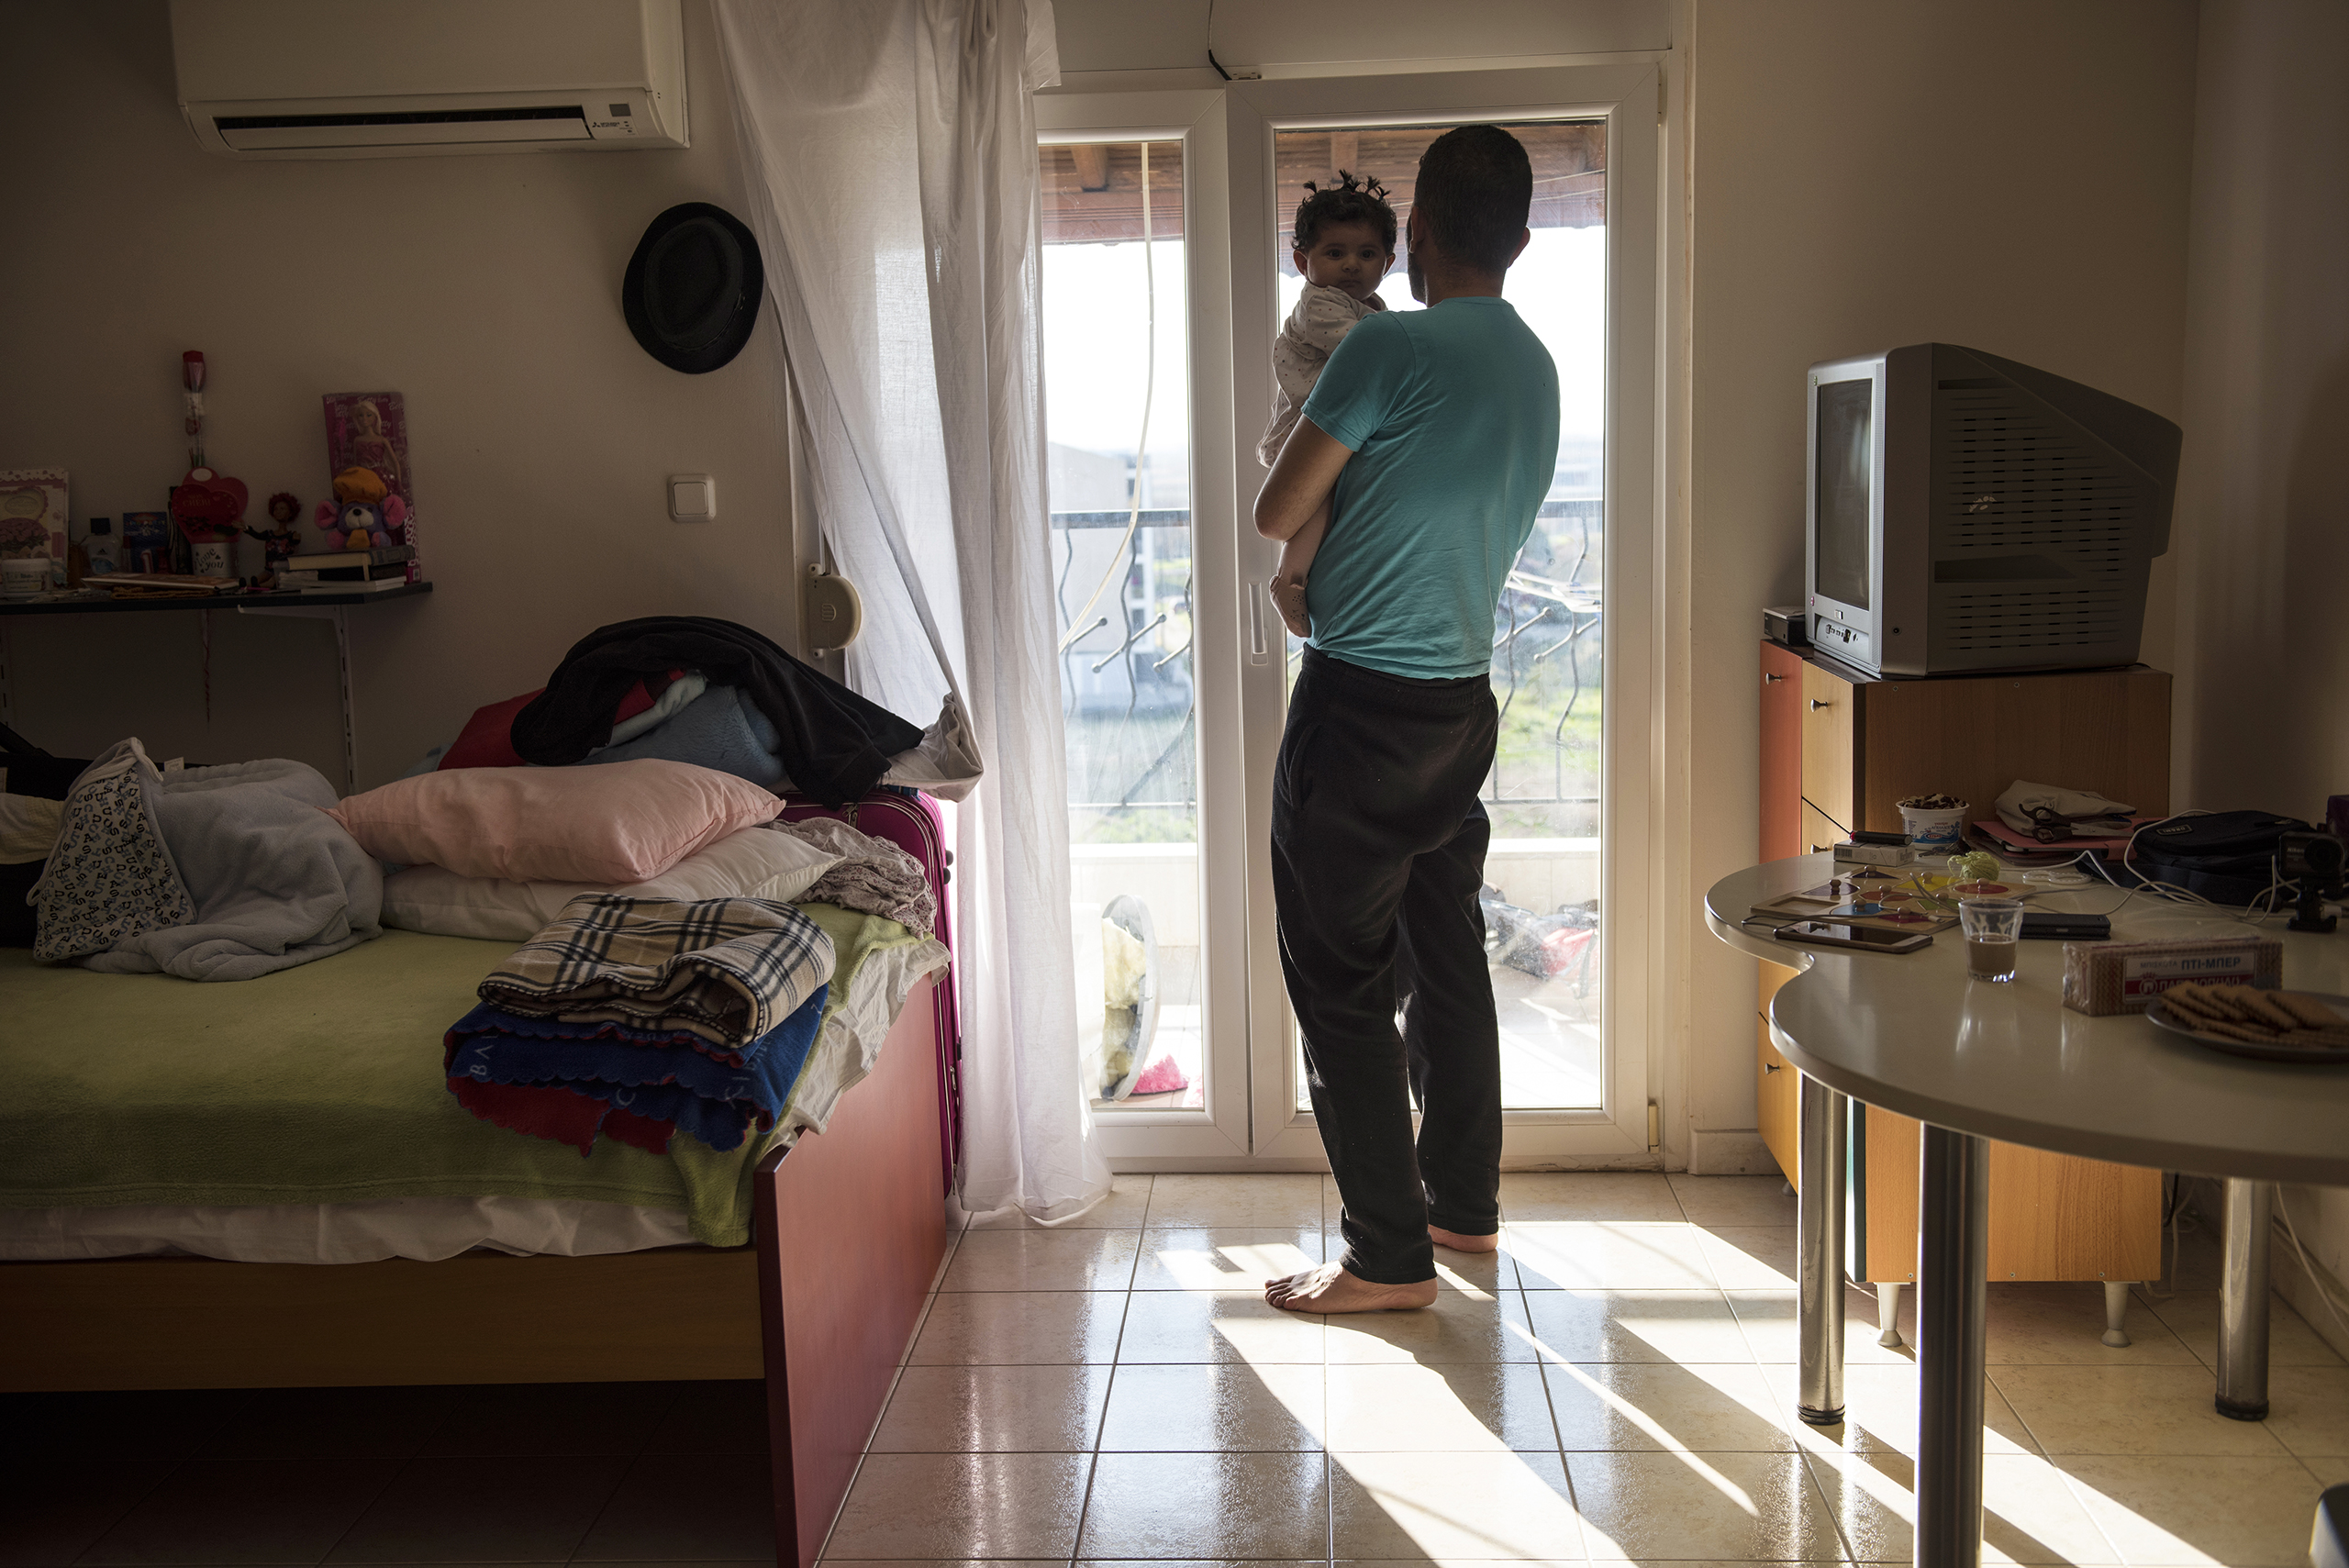 Yousuf Arsan, 27, sings to baby Rahaf, almost 6 months, while his wife (not shown) Noor Al Talaa, 22, cooks lunch at an apartment in Sidros, outside of Thessaloniki, Greece, March 28, 2017.